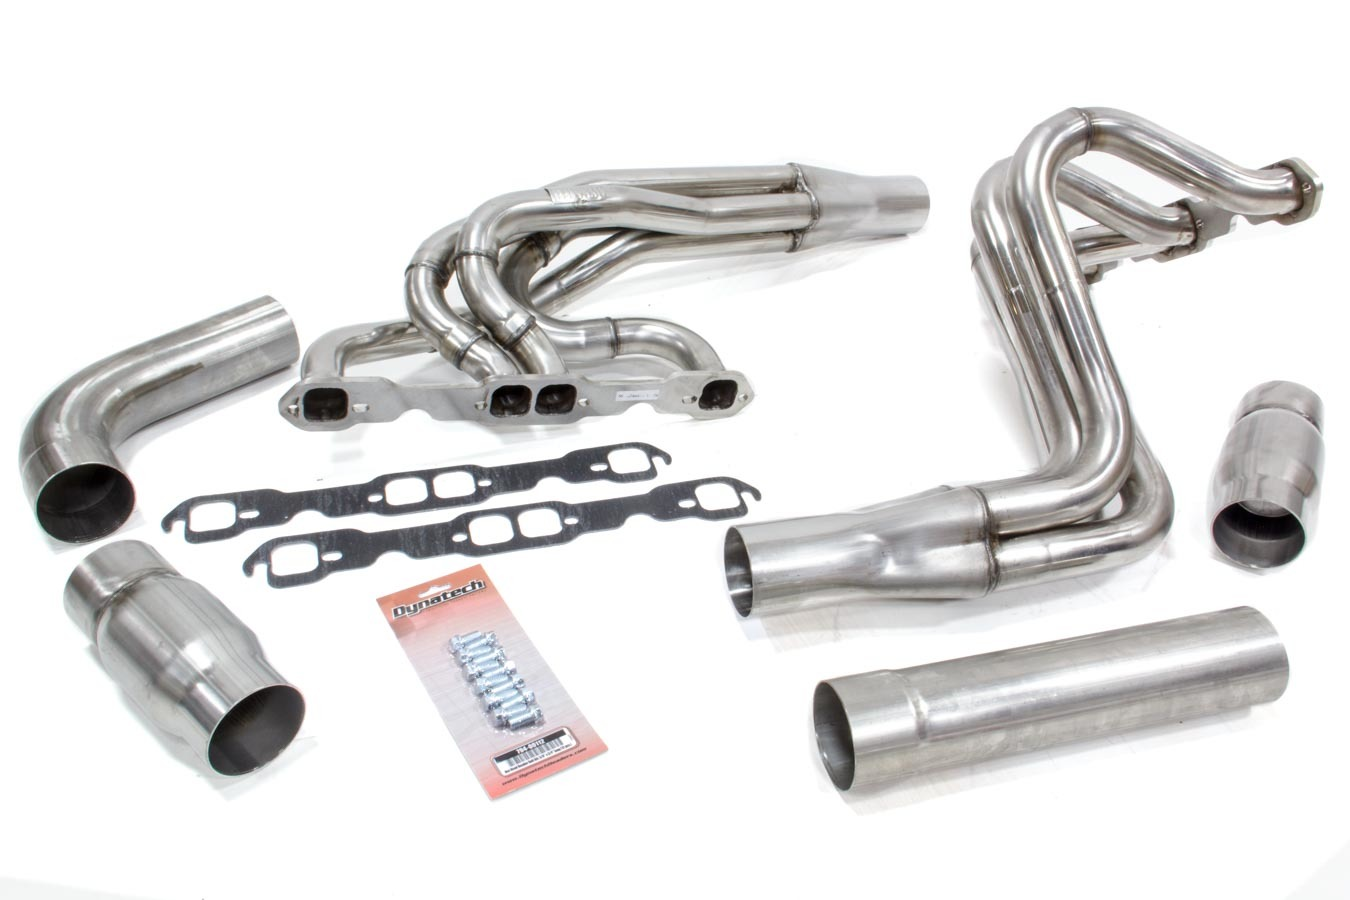 Dynatech 711-65910 Headers, Dirt Late Model, 1-5/8 to 1-3/4 in Primary, 3 in Collector, Extension, Booster, Stainless, Natural, Small Block Chevy, Kit